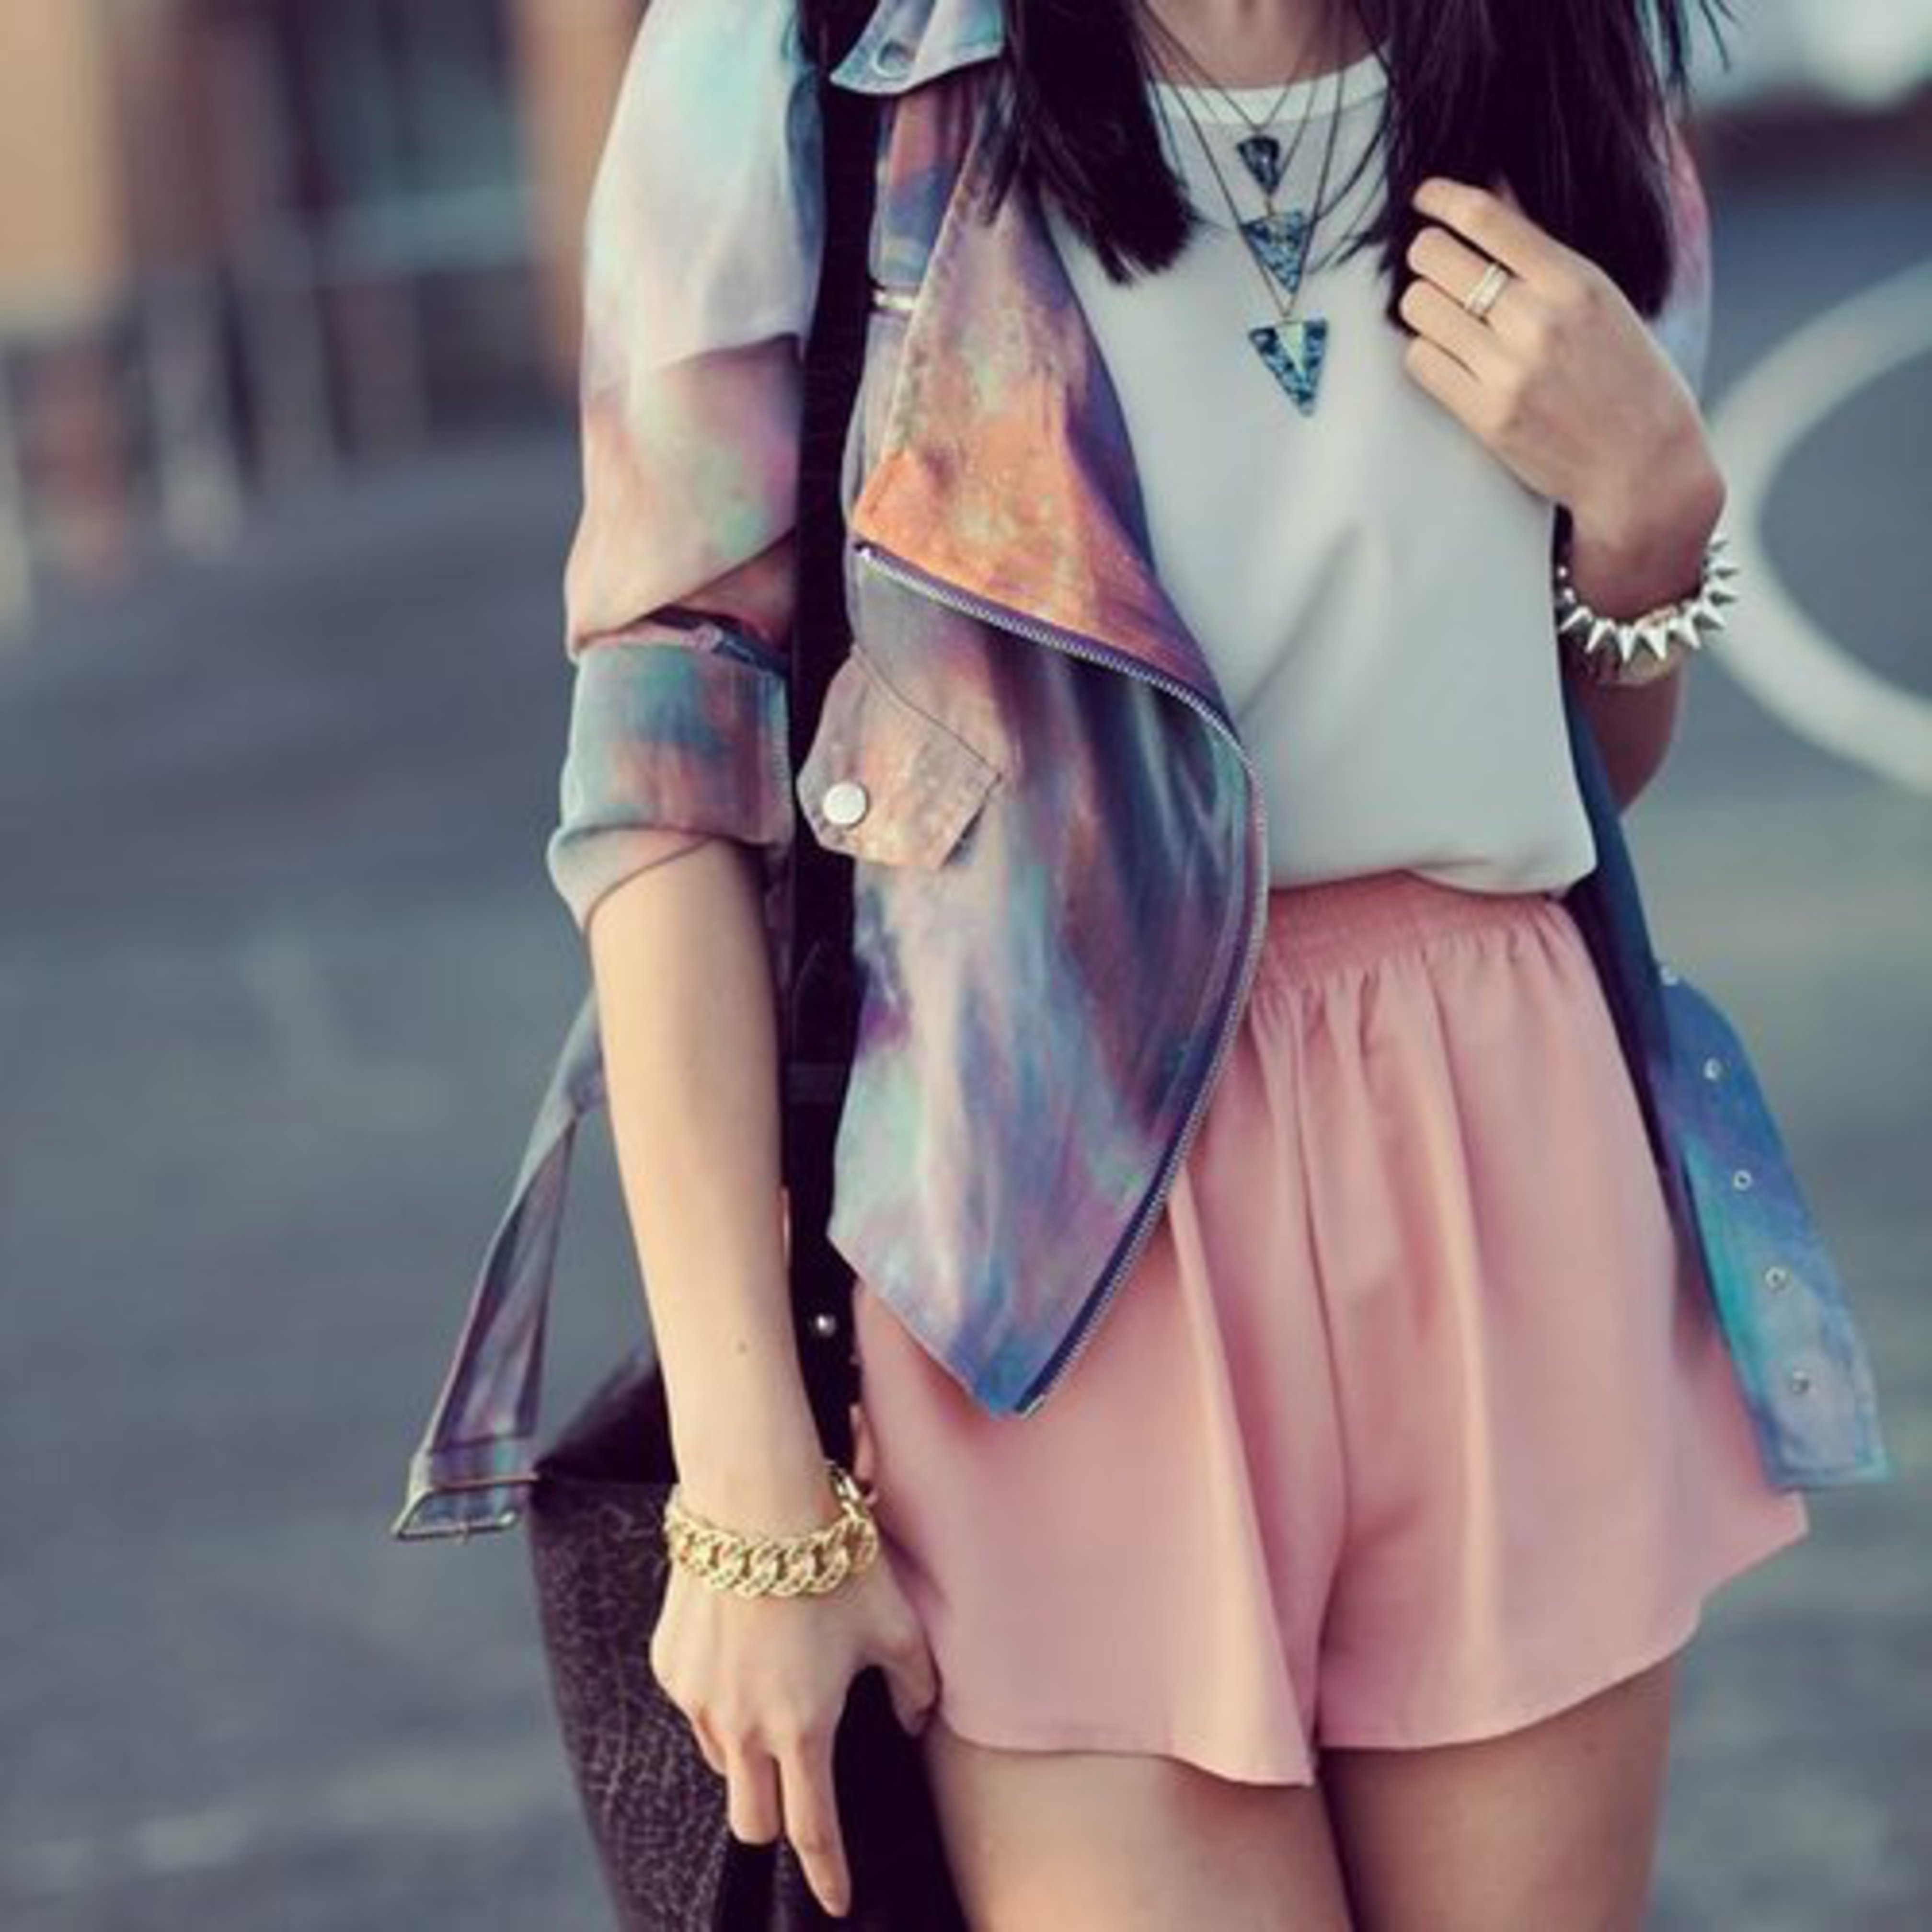 jacket colorful cool unordinary creative cute beautiful jeans denim shorts pink violet pastel shirt jewelry bag grey coat jaket blouse galaxy print pink skirt faboulos